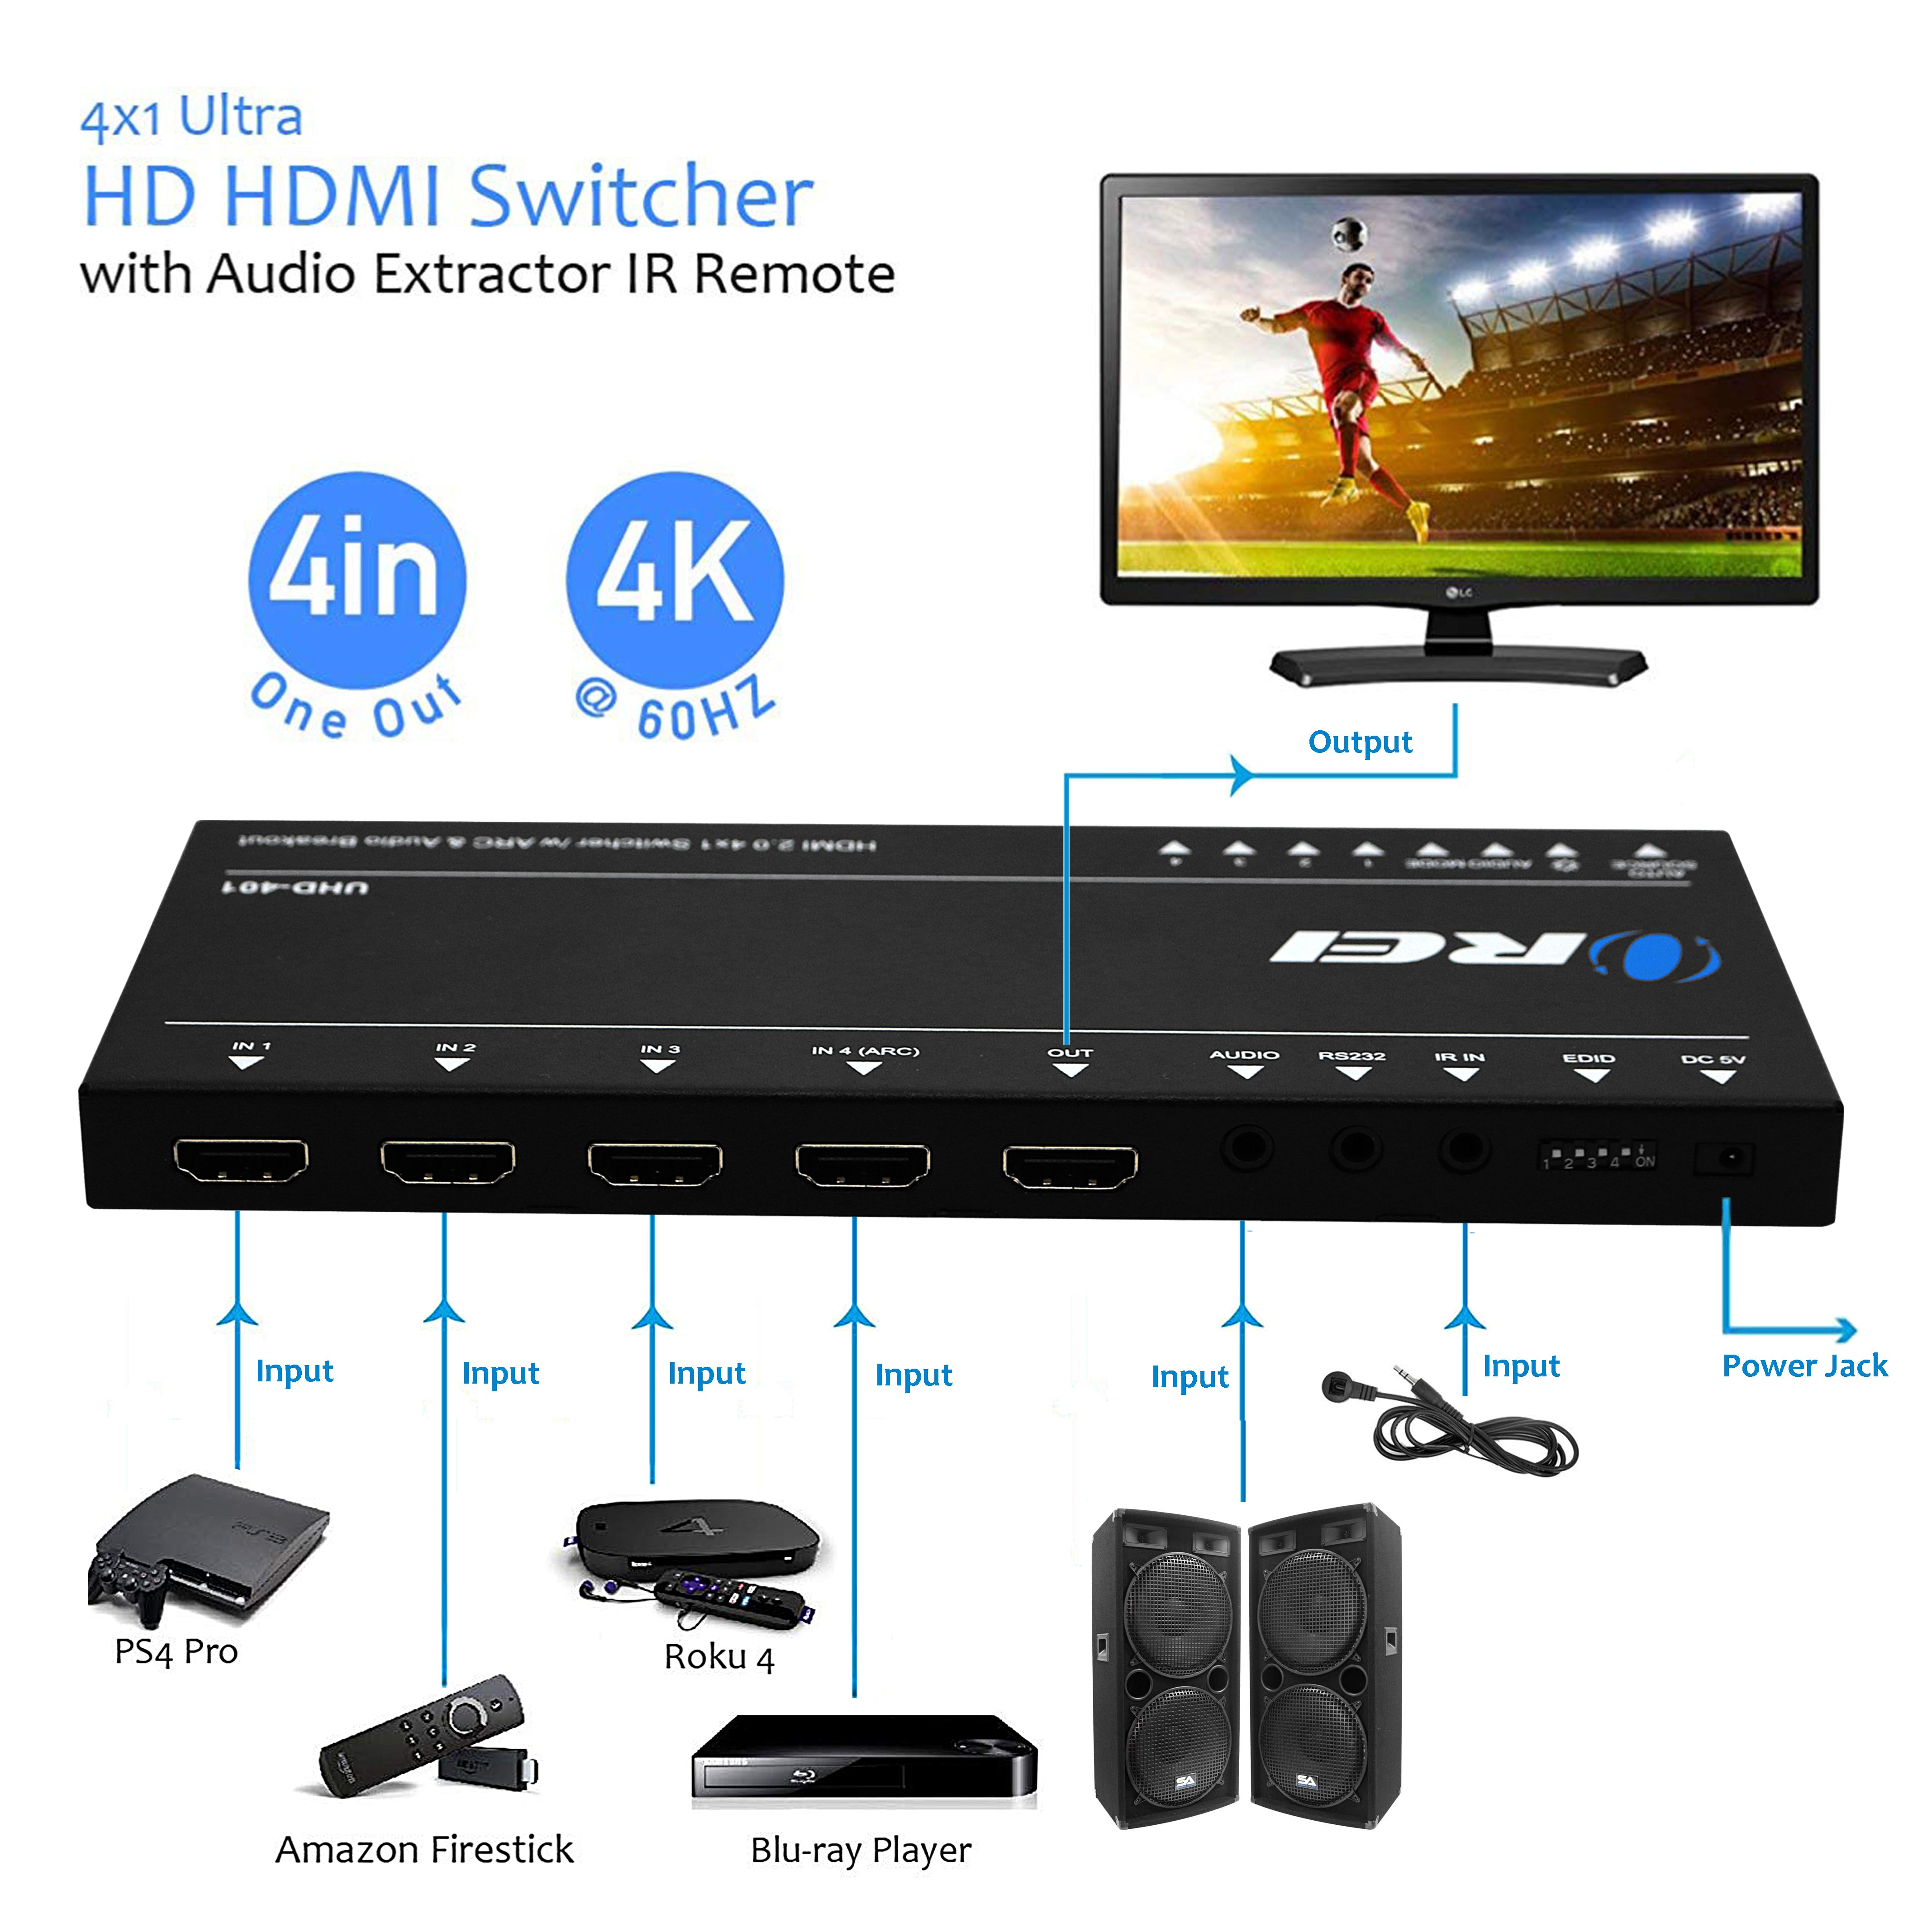 OREI Ultra HD HDMI 4 x 1 Switcher with ARC Out 18G Audio Extractor IR  Remote - Supports Upto 4K @ 60Hz - (4 Input, 1 Output) Switch, Hub, Port  for